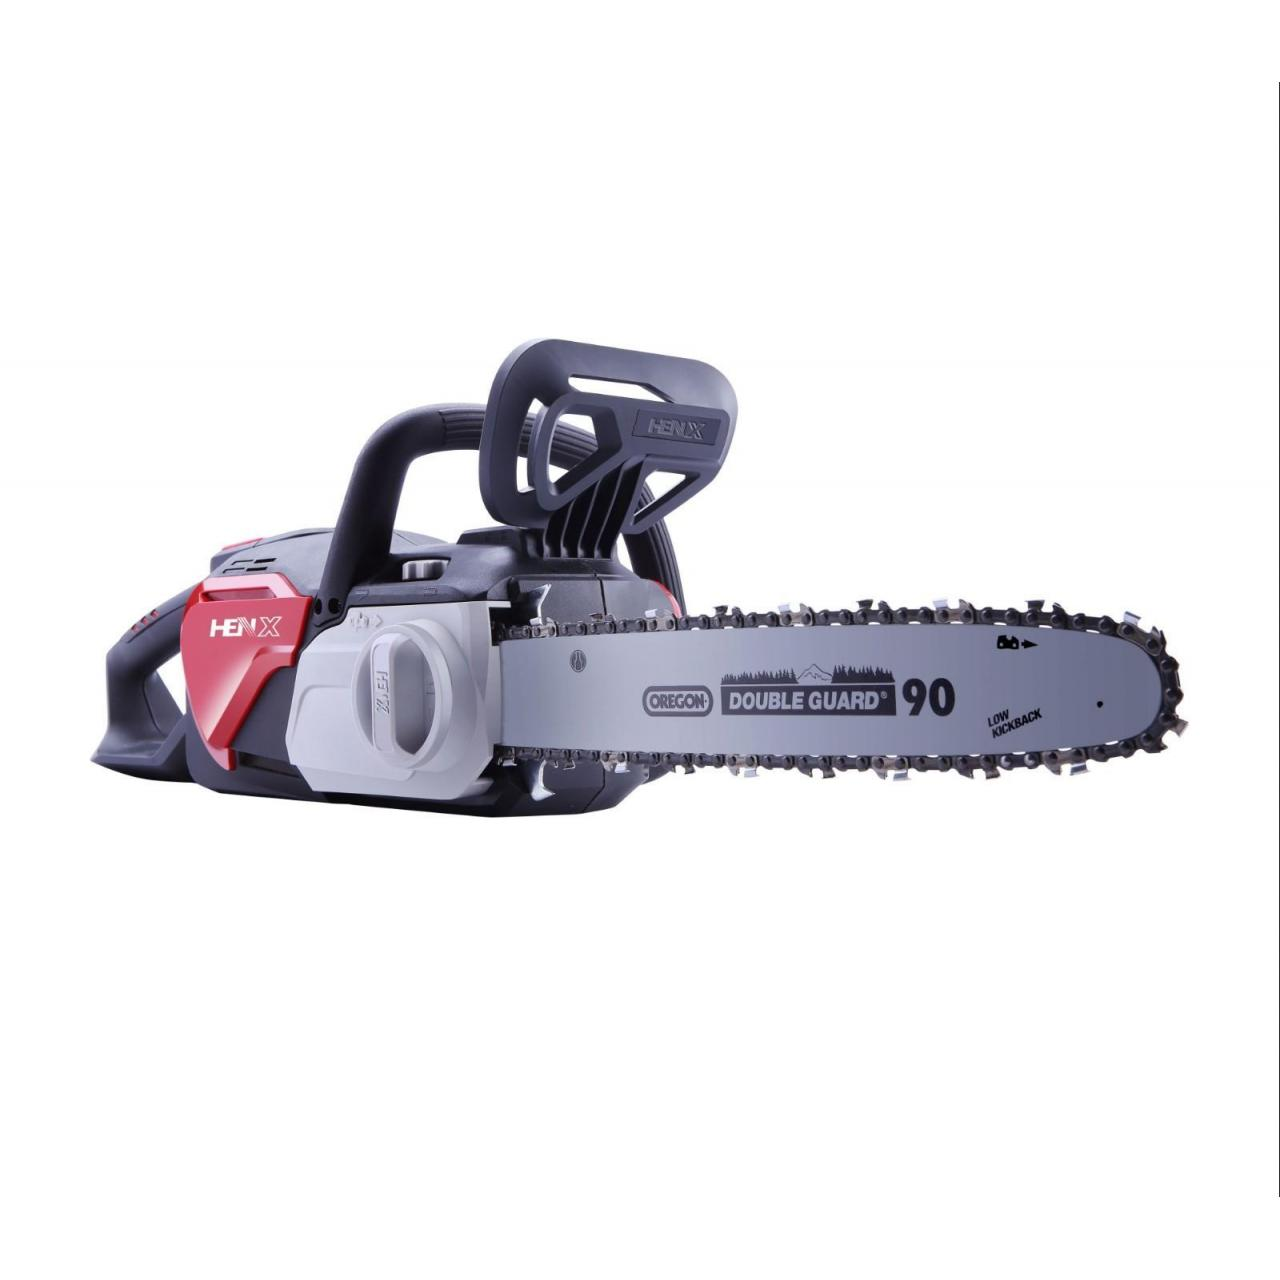 Buy cheap HENX 14/16-INCH 40V MAX LITHIUM-ION BRUSHLESS CHAIN SAW from wholesalers